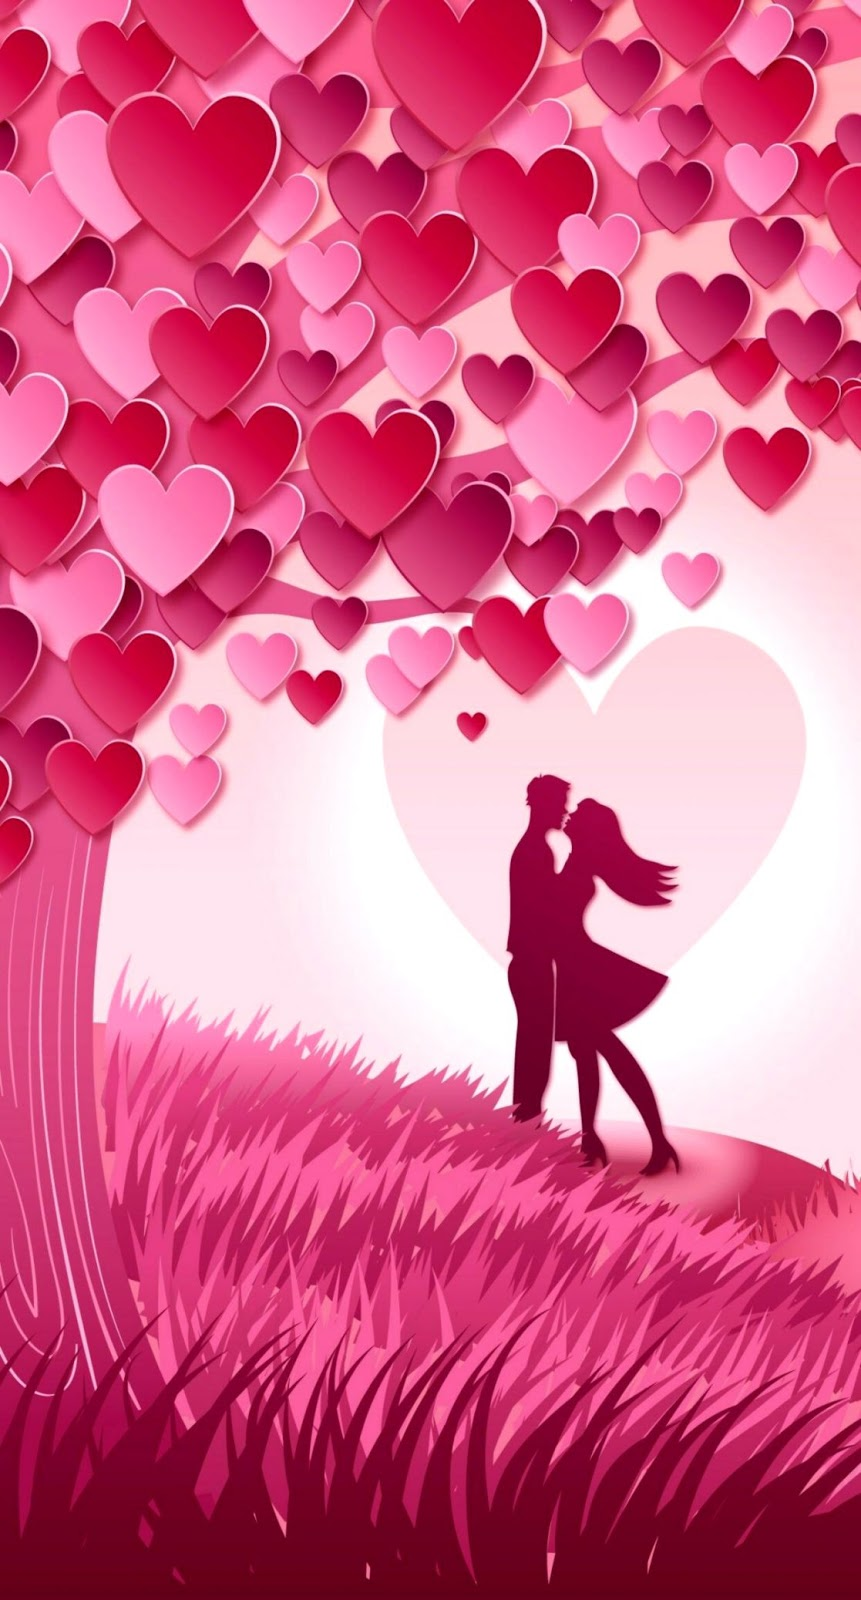 I Love You Wallpaper Spot Wallpapers Love New Wallpaper Hd Download 2019 861x1600 Download Hd Wallpaper Wallpapertip